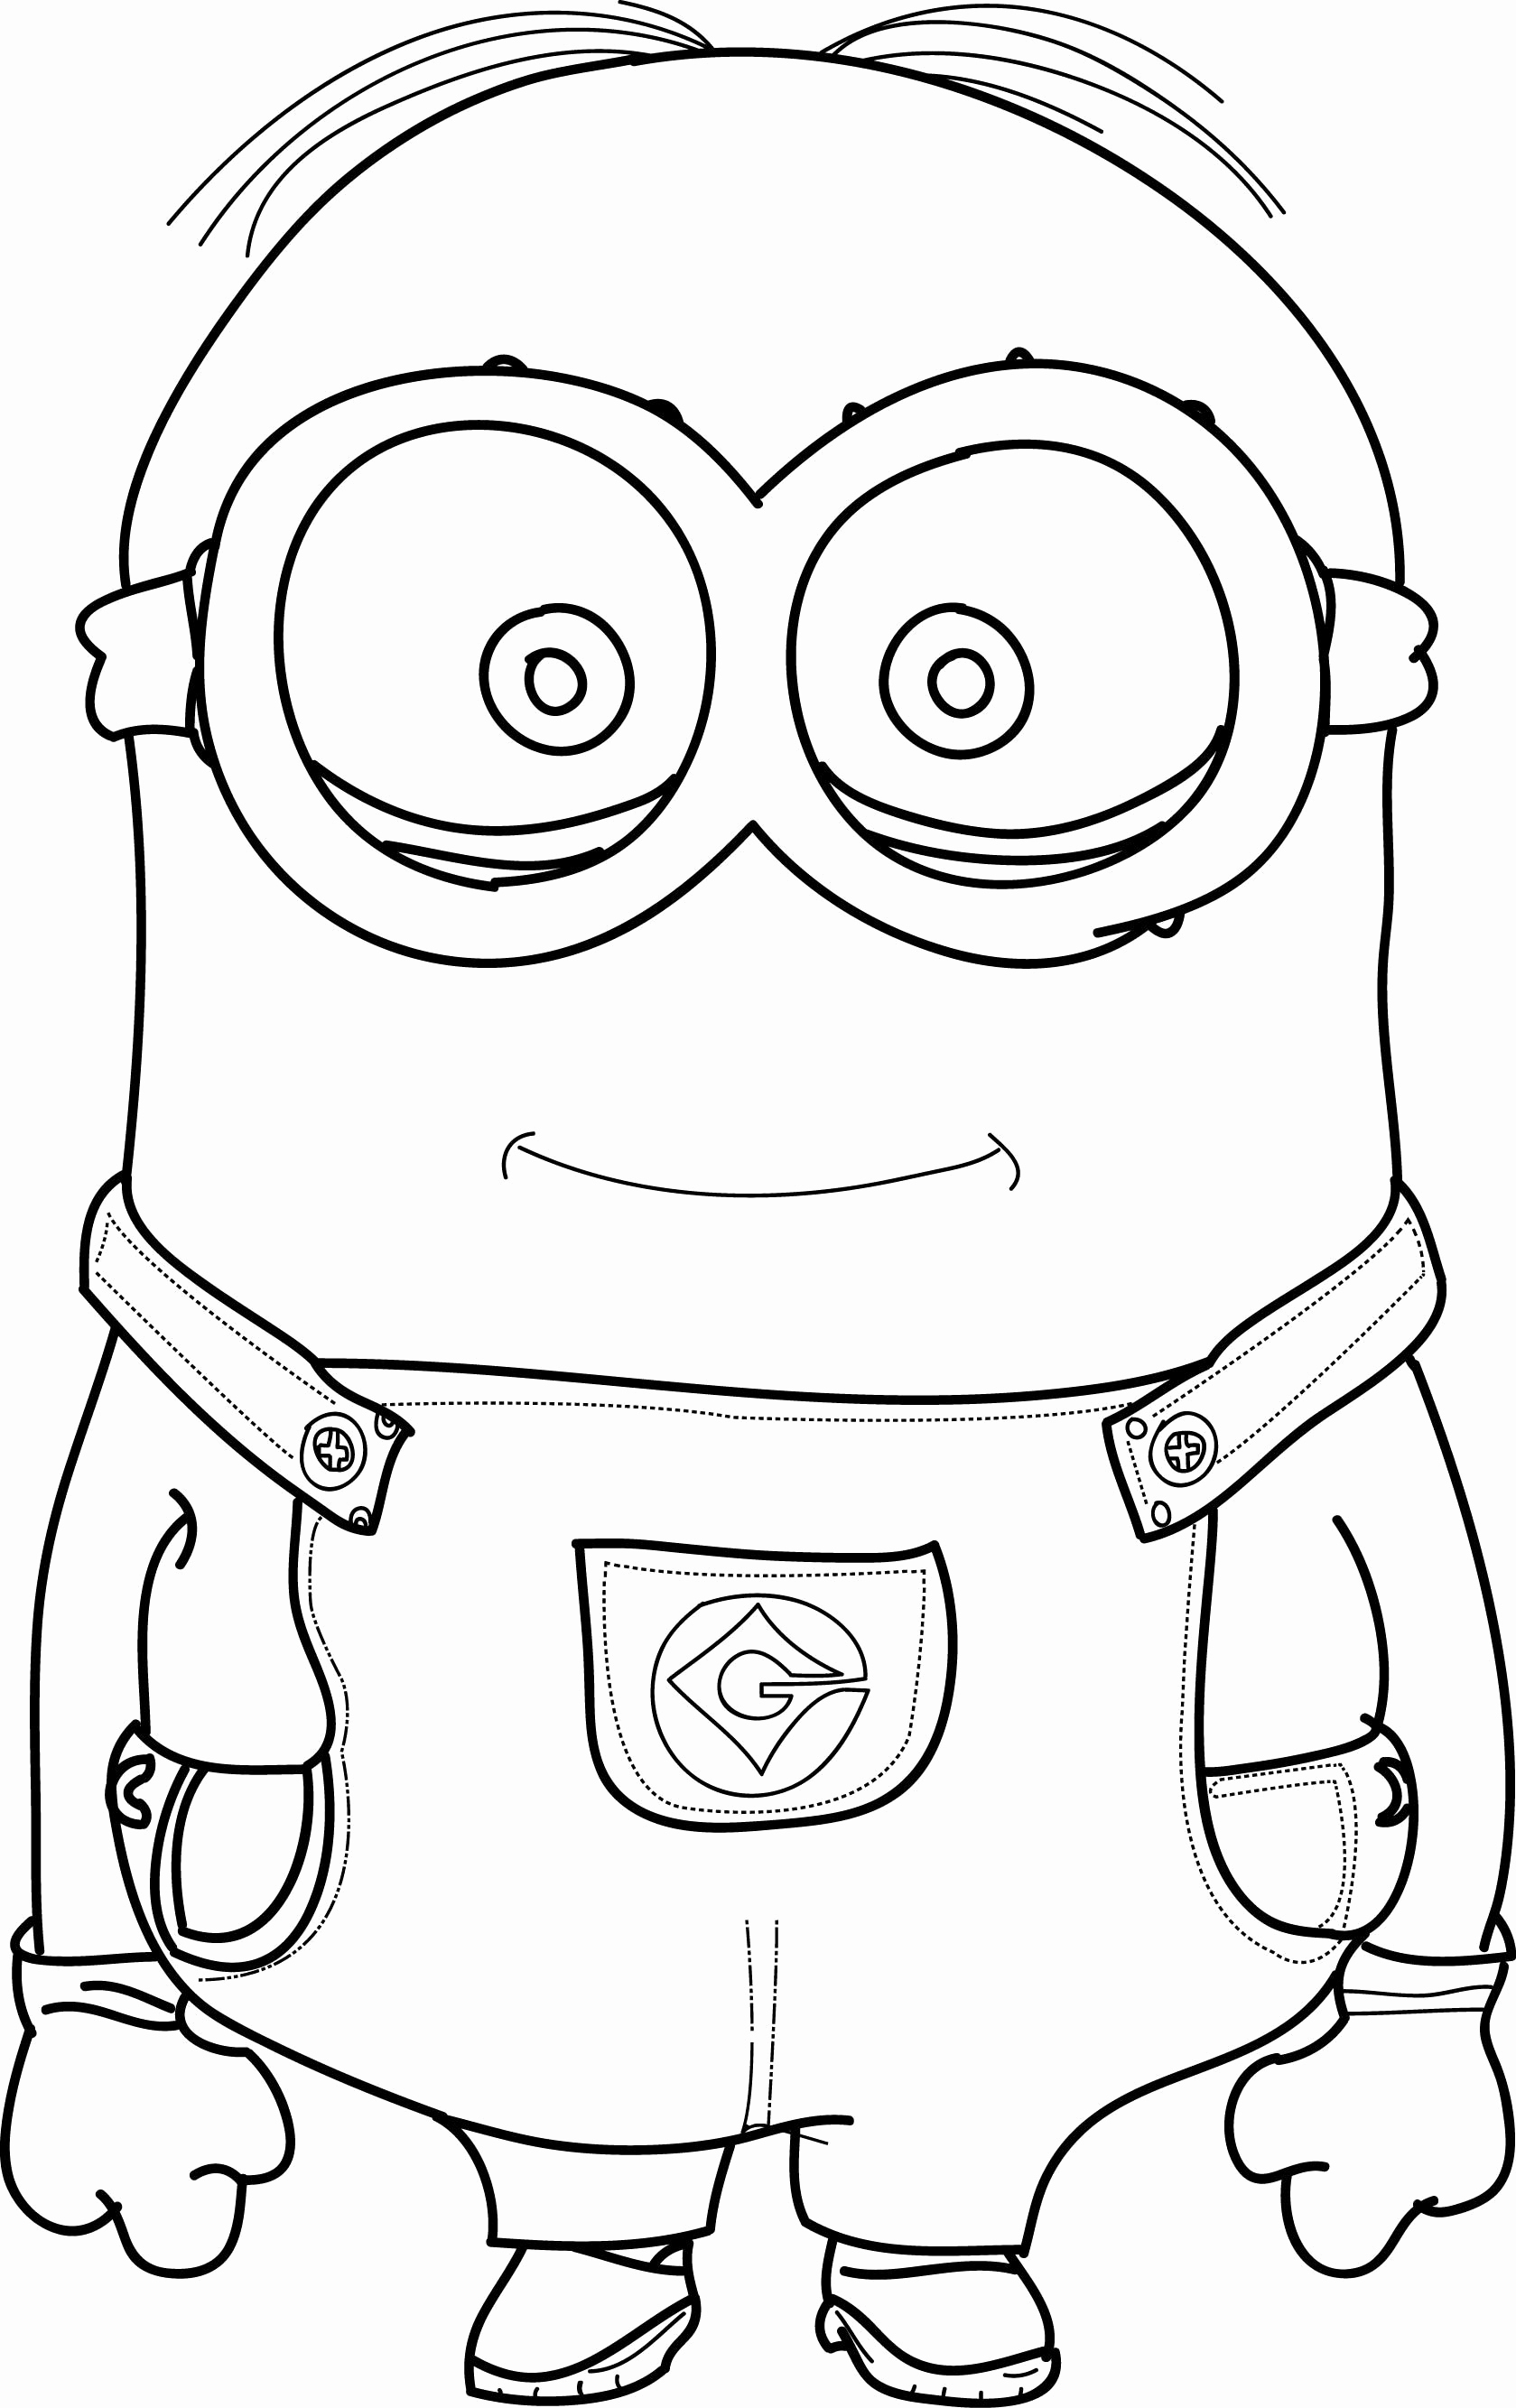 1679x2667 Halloween Coloring Templates Best Of Minions Coloring Pages